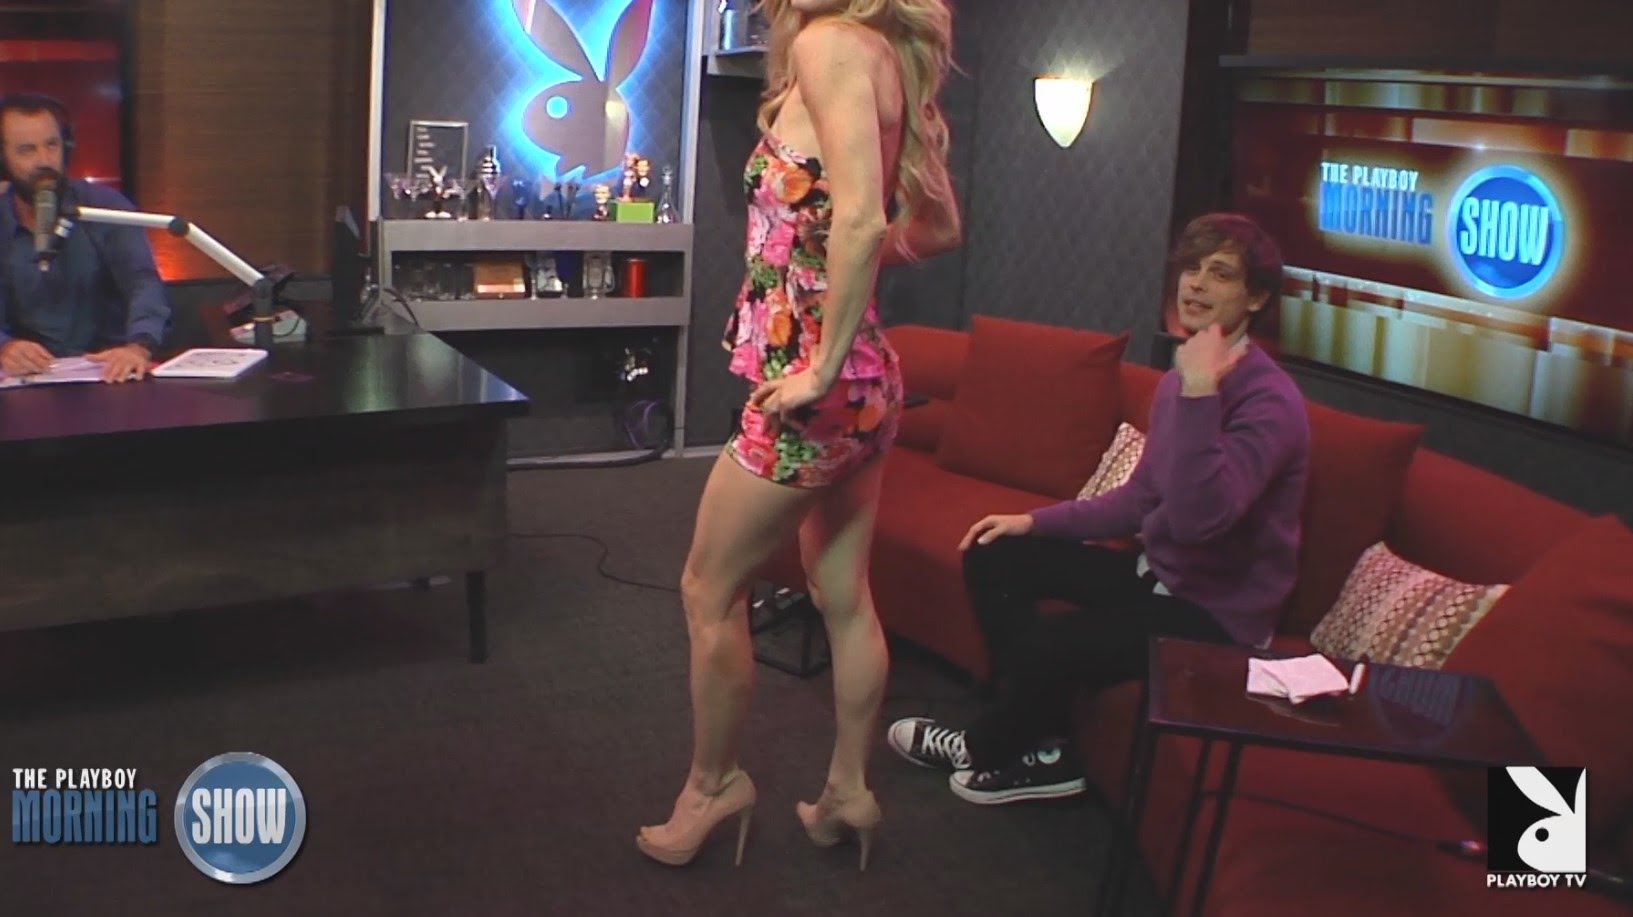 Matthew Gubler desfilando no Playboy Morning show